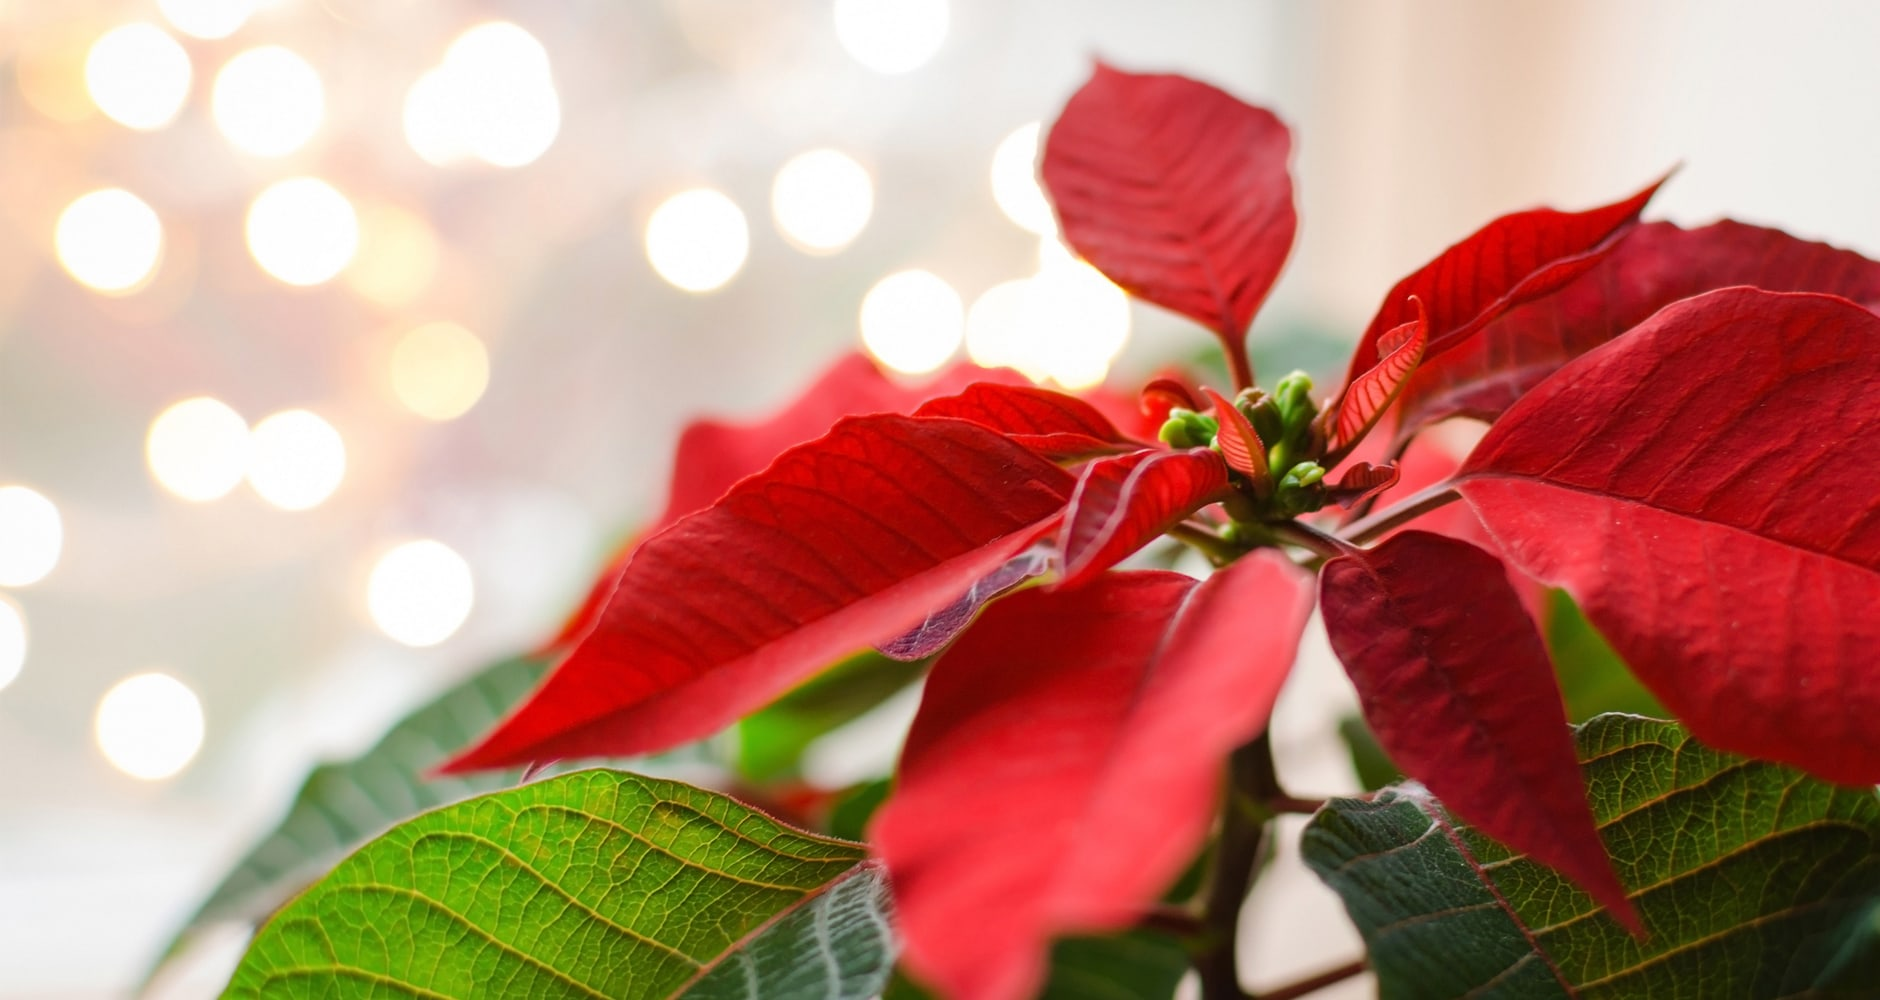 Fun Facts And Trivia About Poinsettias The Christmas Plant